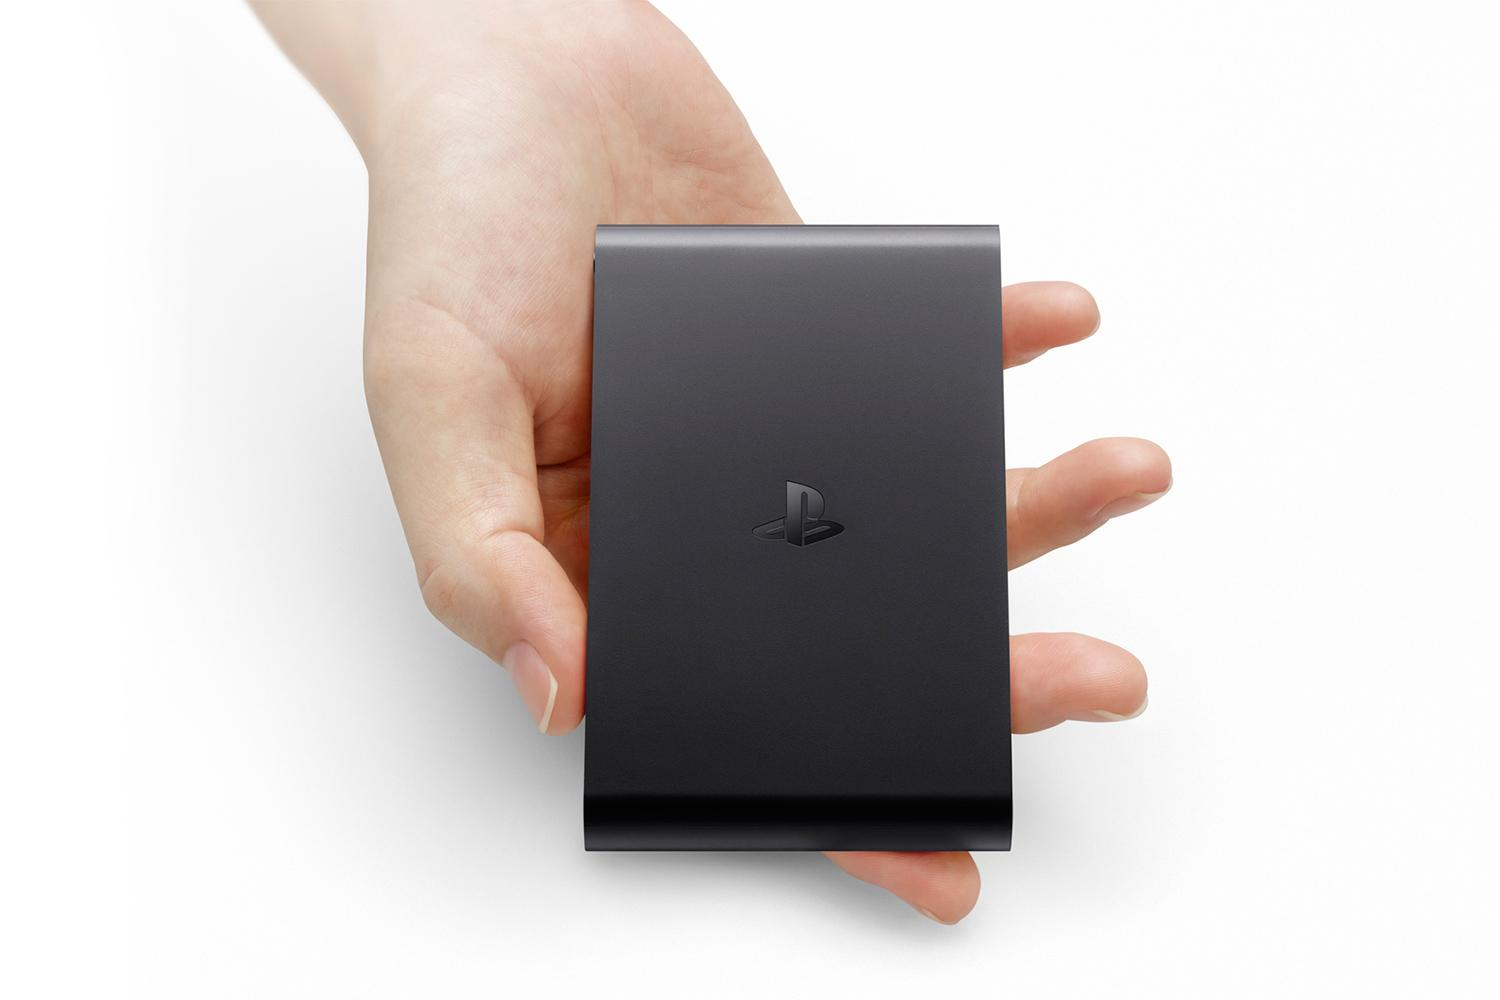 Sony's microconsole goes on sale in time for the gift-giving holidays.